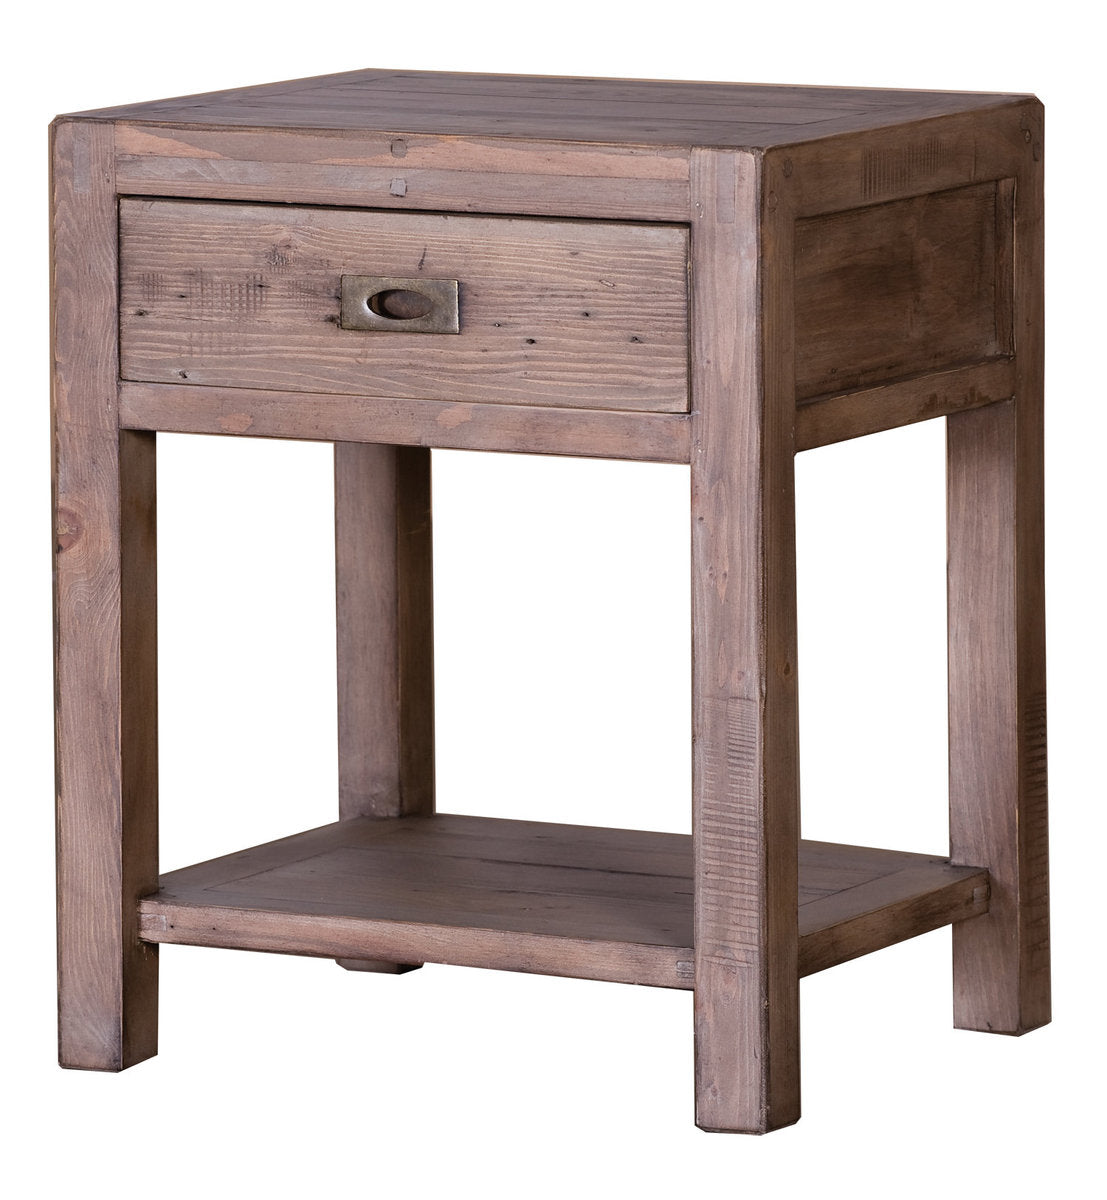 POST & RAIL REGULAR END TABLE - SUNDRIED